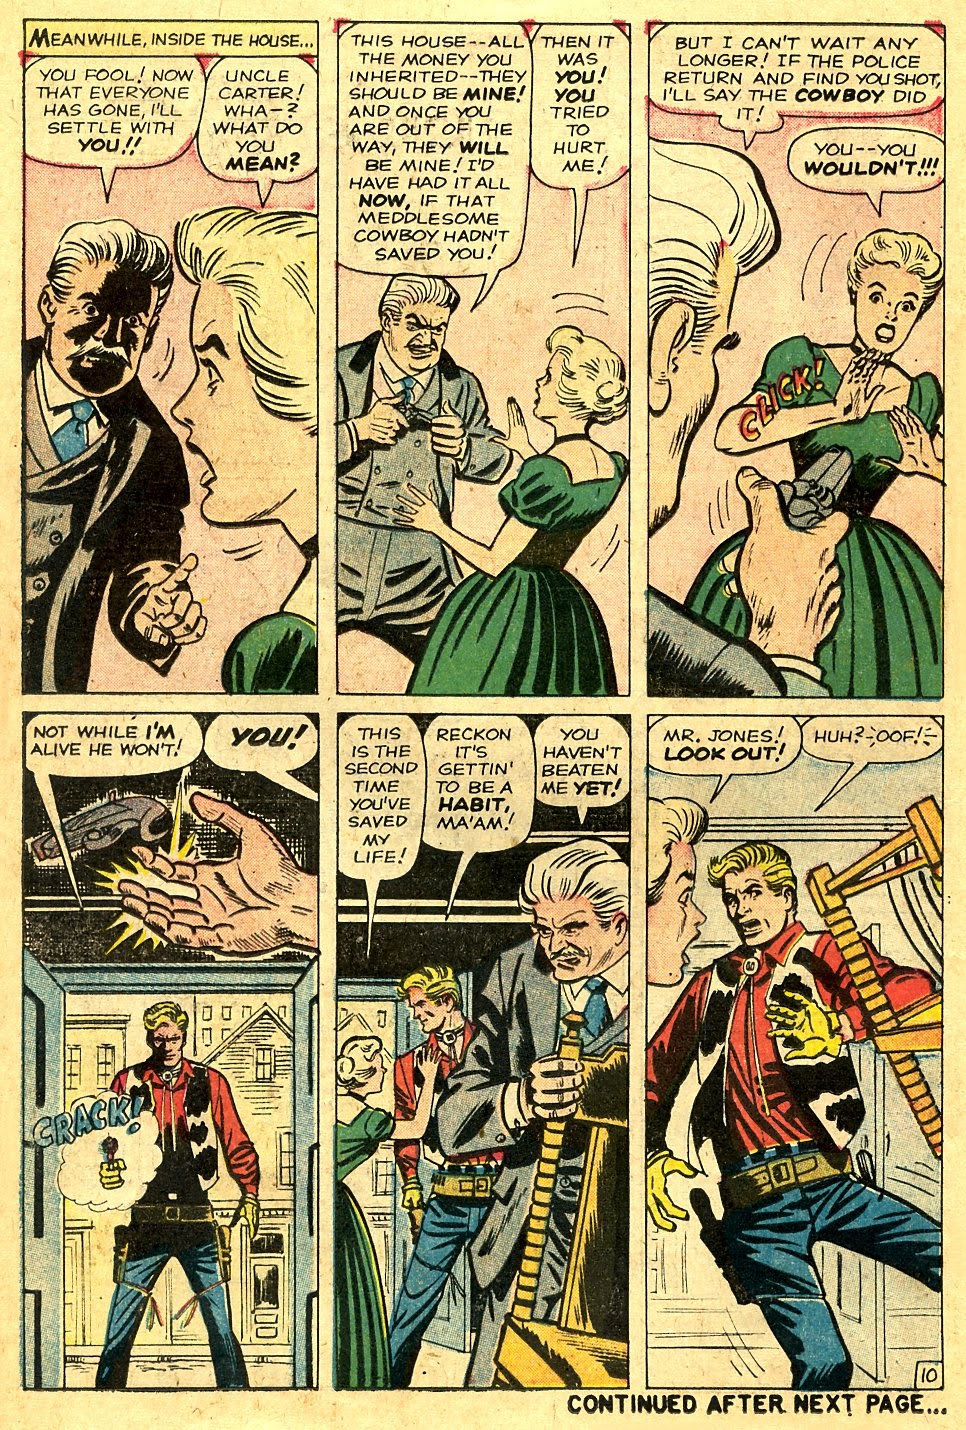 Kid Colt Outlaw issue 108 - Page 14